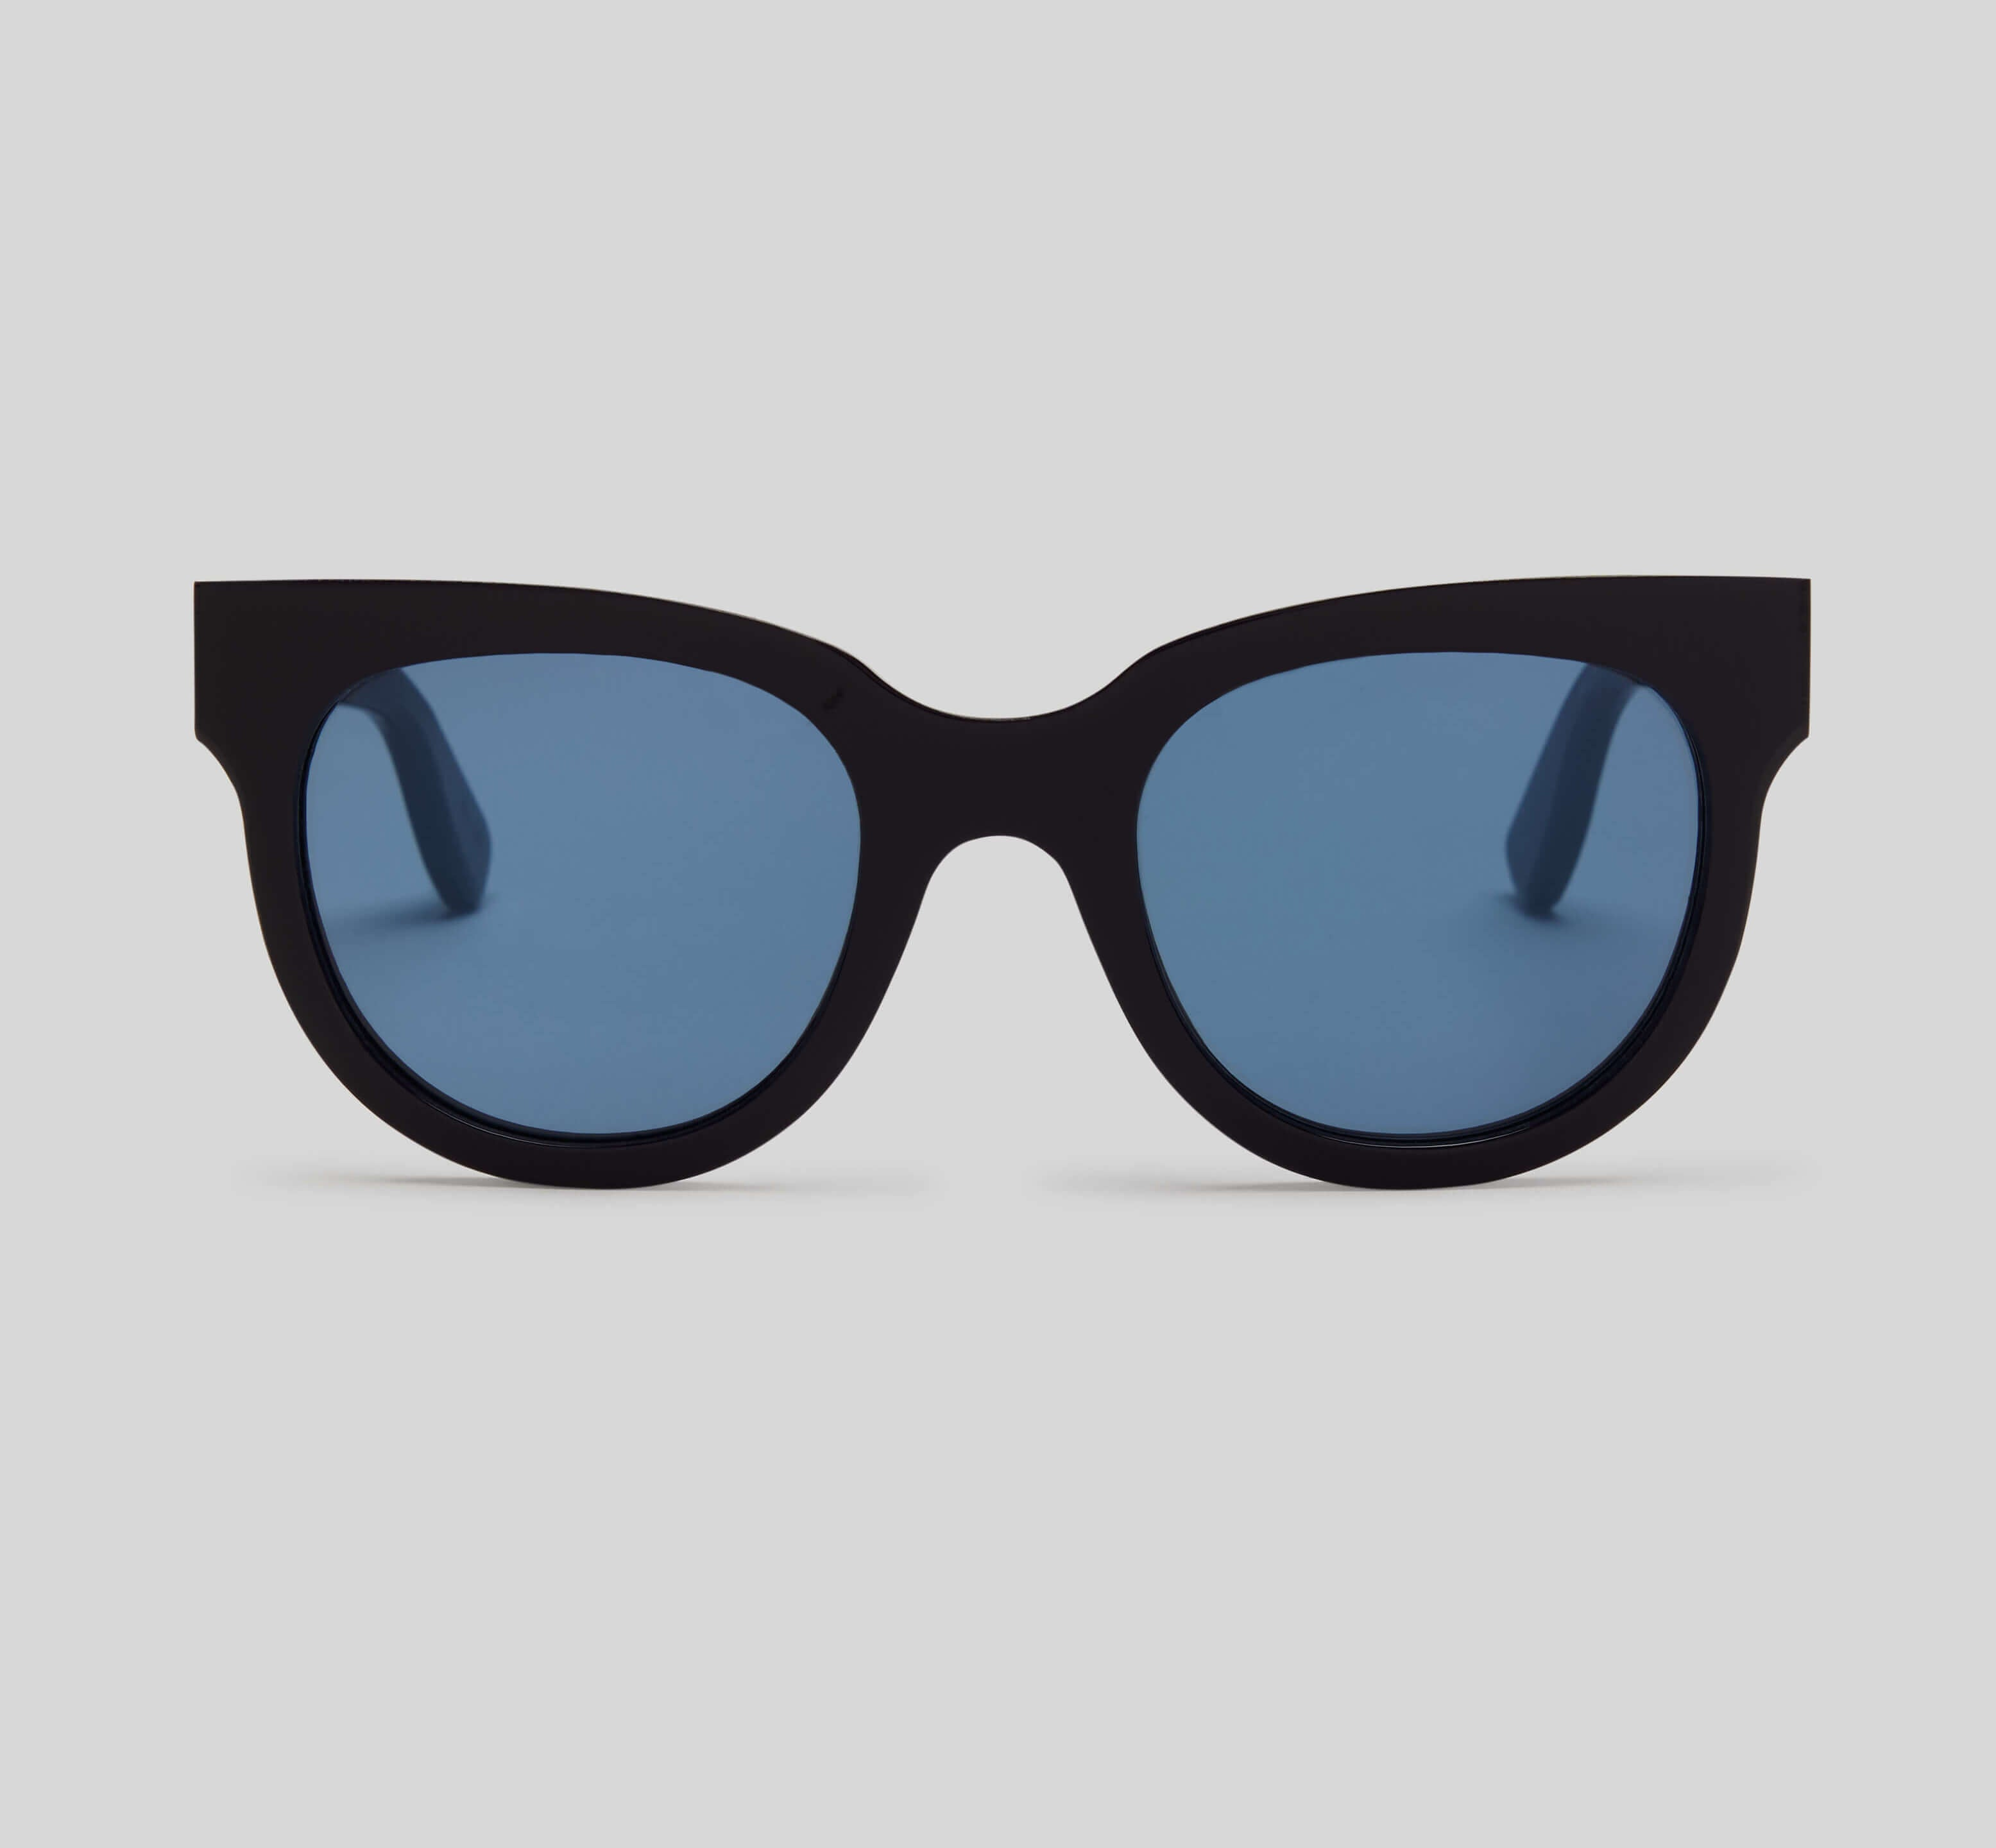 Navy cat eye sunglasses eco friendly sustainable fashion made in Japan unisex sunglasses for men sunglasses for women and blue light filter